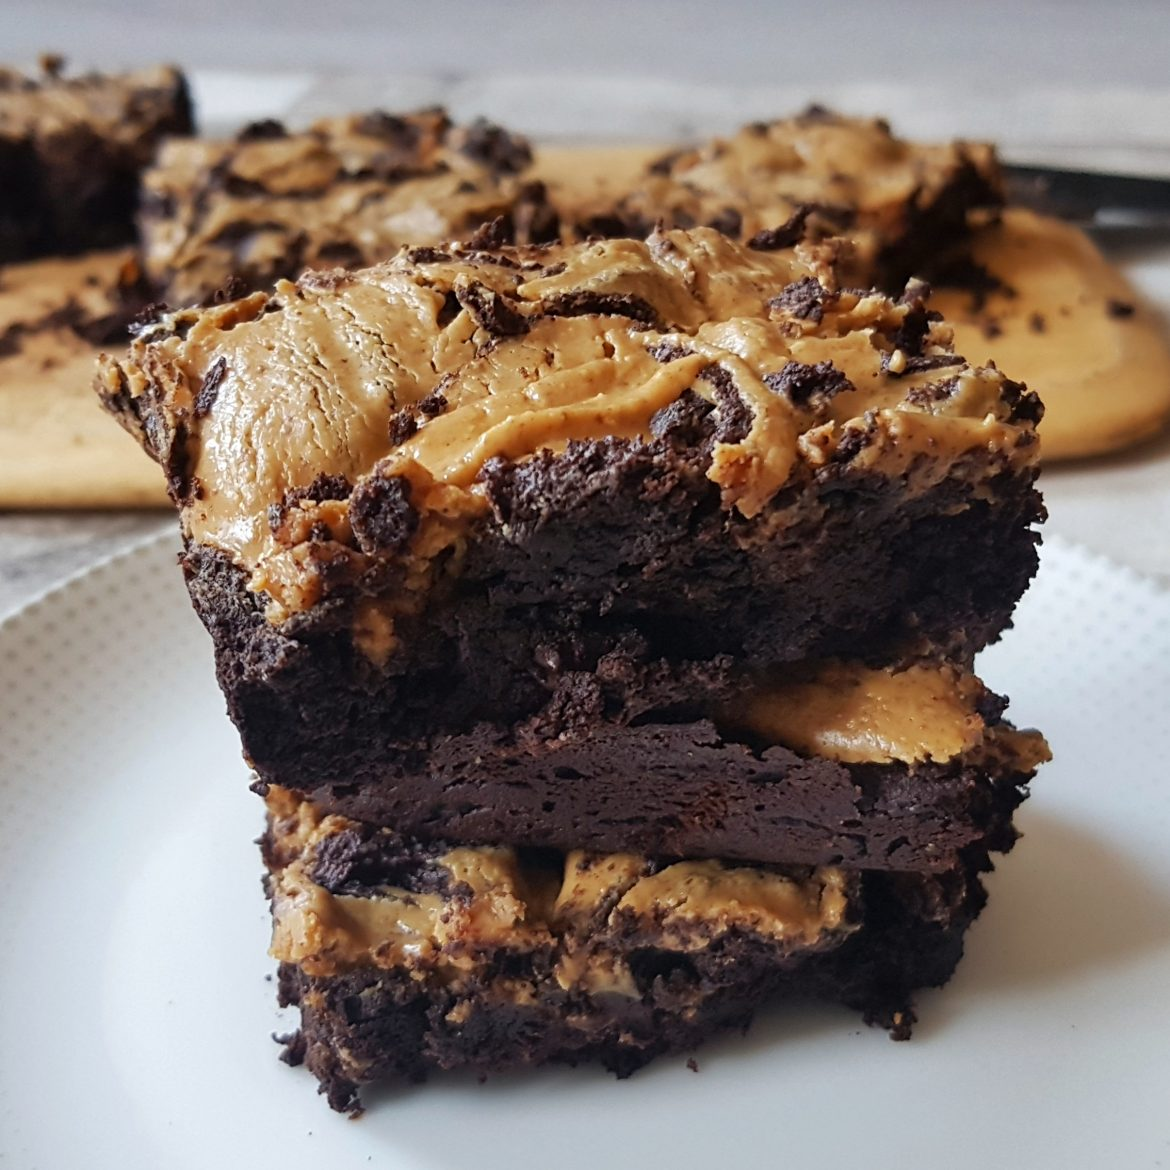 Chocolate Peanut Butter-Swirl Brownies